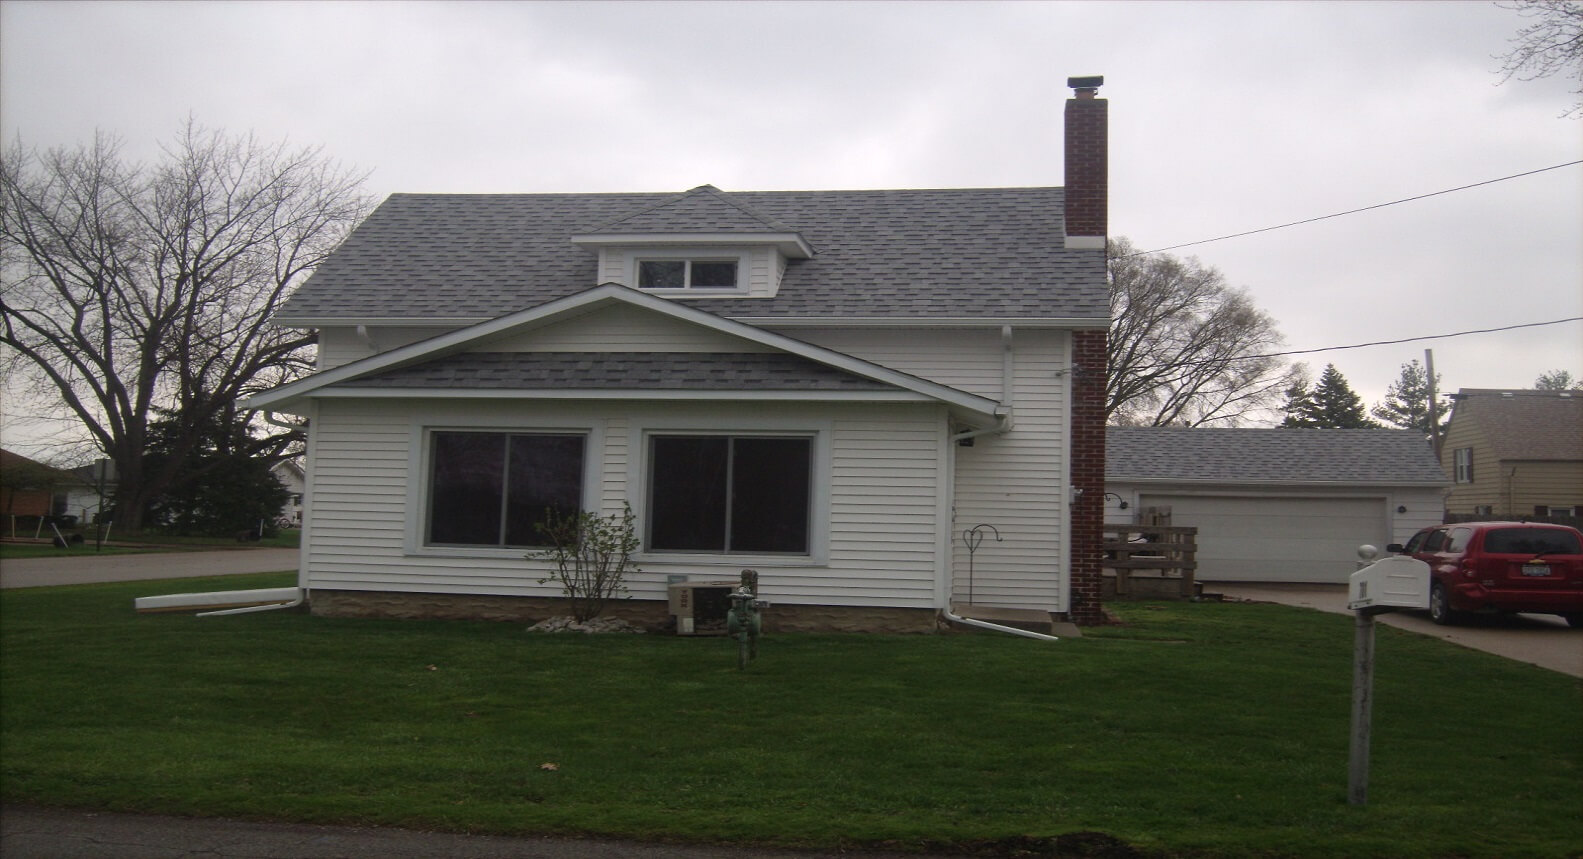 Toledo Roofer, New Roof, Gutters, and Siding